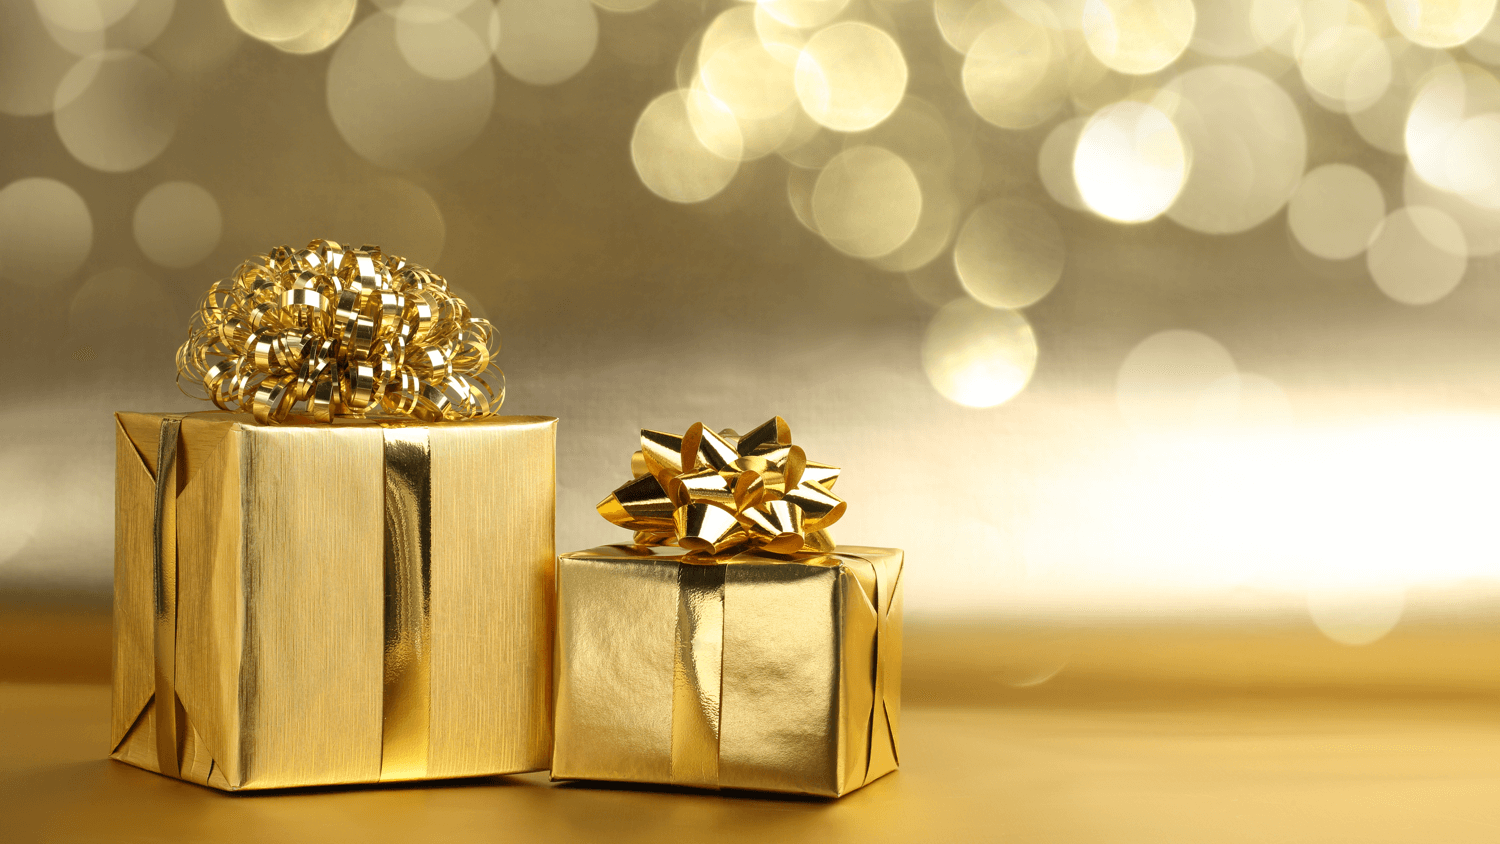 4 Ways to Show Tenant Appreciation During the Holidays